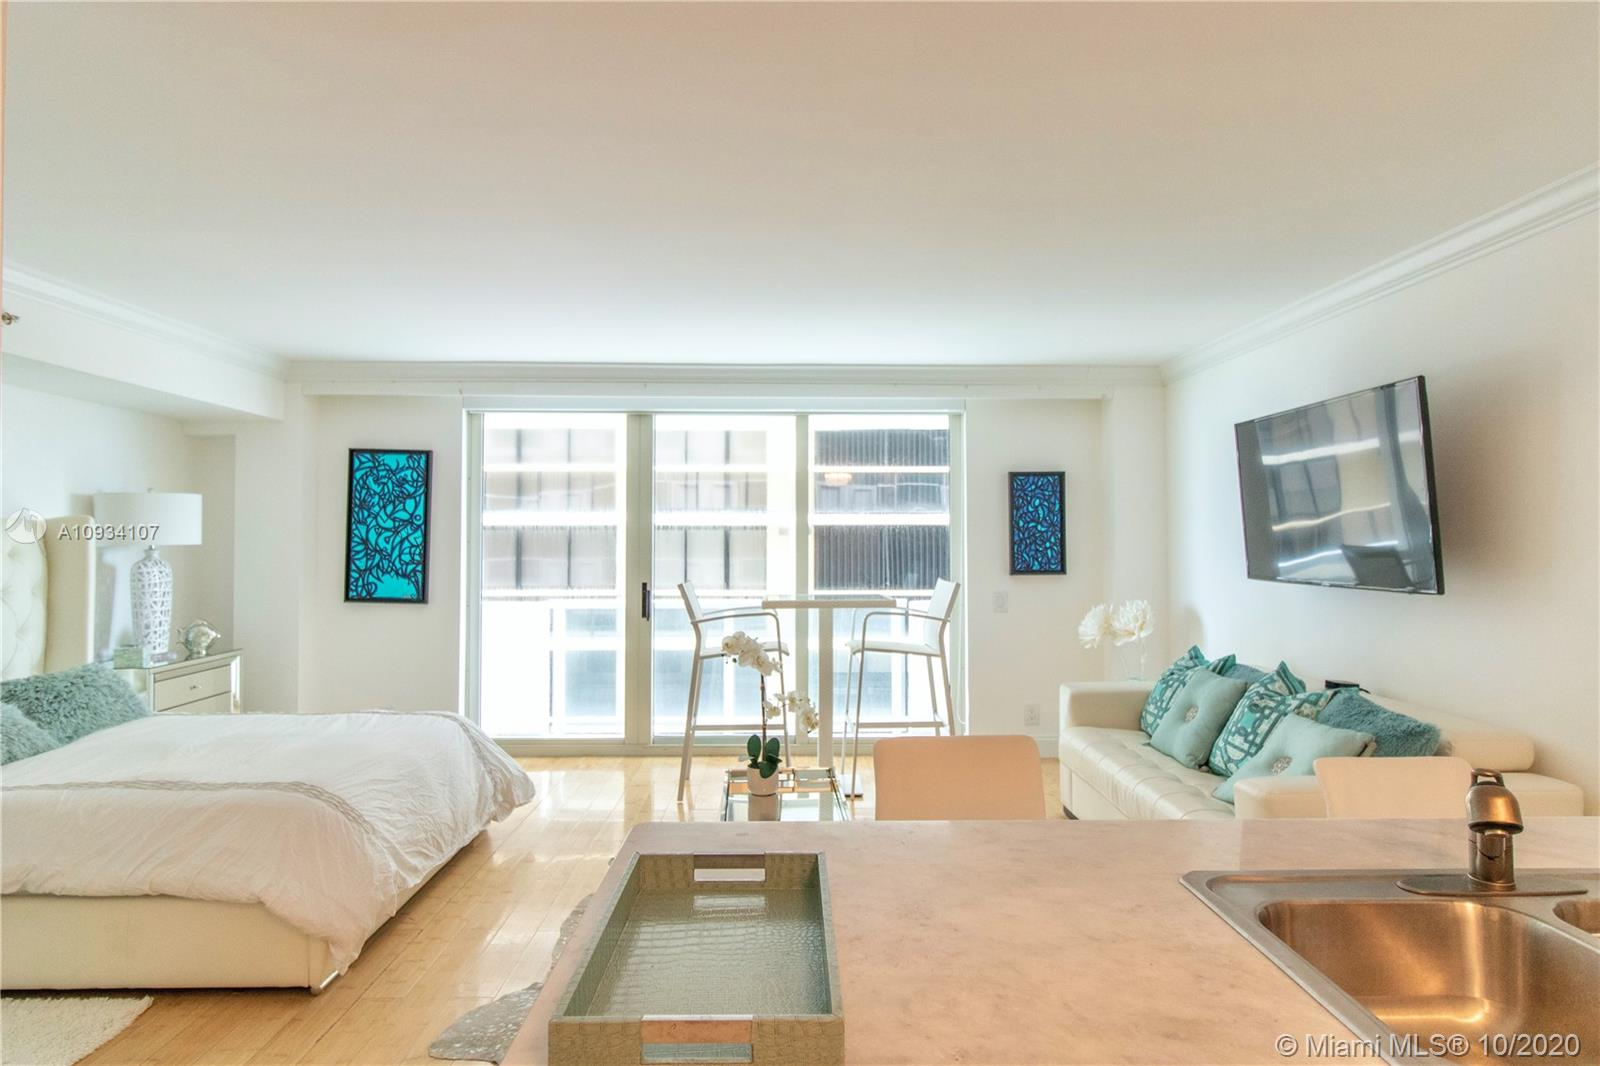 This is the one!!! Come have an ocean life style. Very cozy furnished studio with a modern décor and a huge closet. Available for six months rental only. Washer and dryer inside the unit. 24 Hours security and concierge, gym, pool just few steps to the beach.